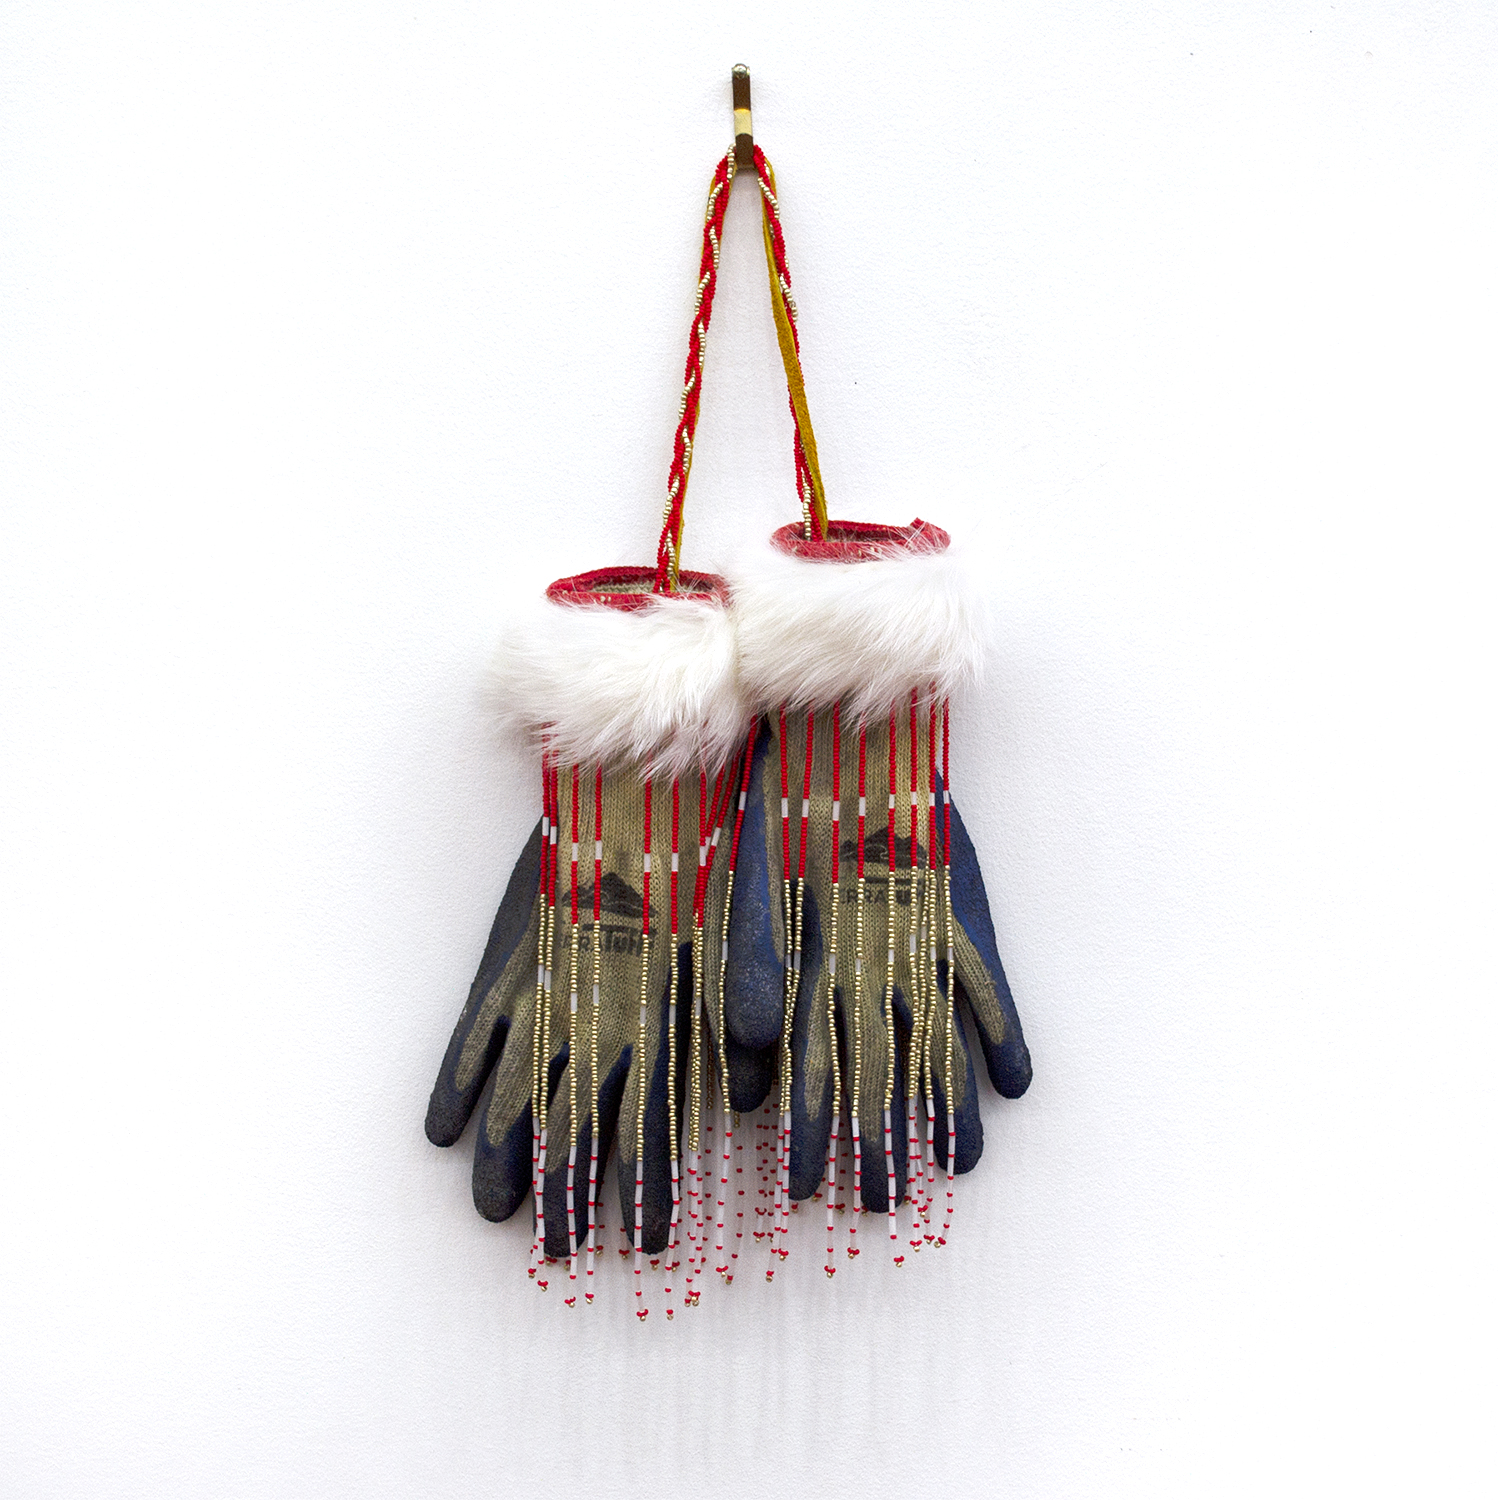 "Workers Gloves, 2018, Audie Murray (Métis), Gloves, beads, leather, rabbit fur, 16"" x 8.5"" x 2.5"", SOLD"